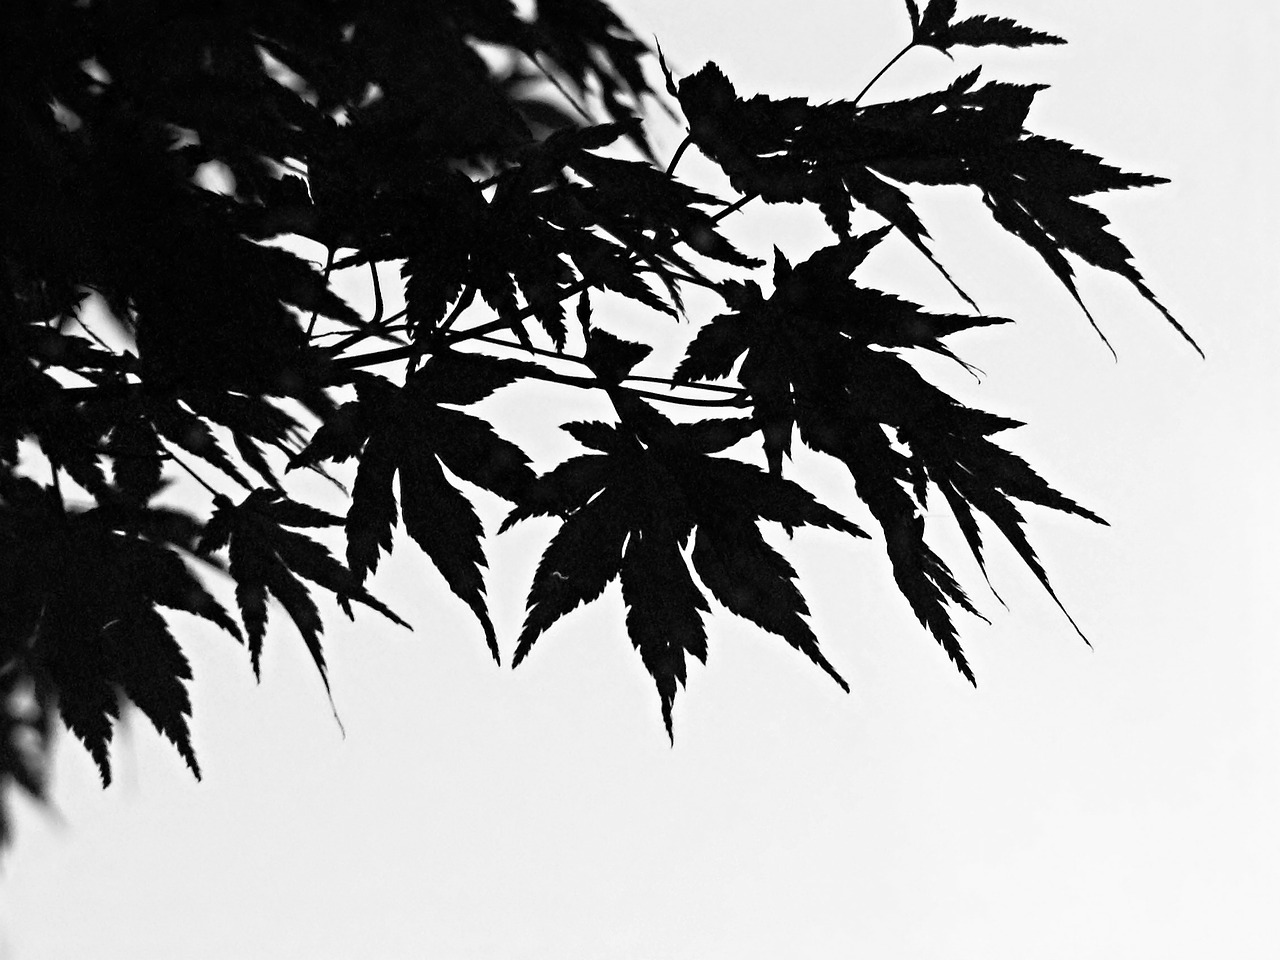 black and white foliage branch free photo